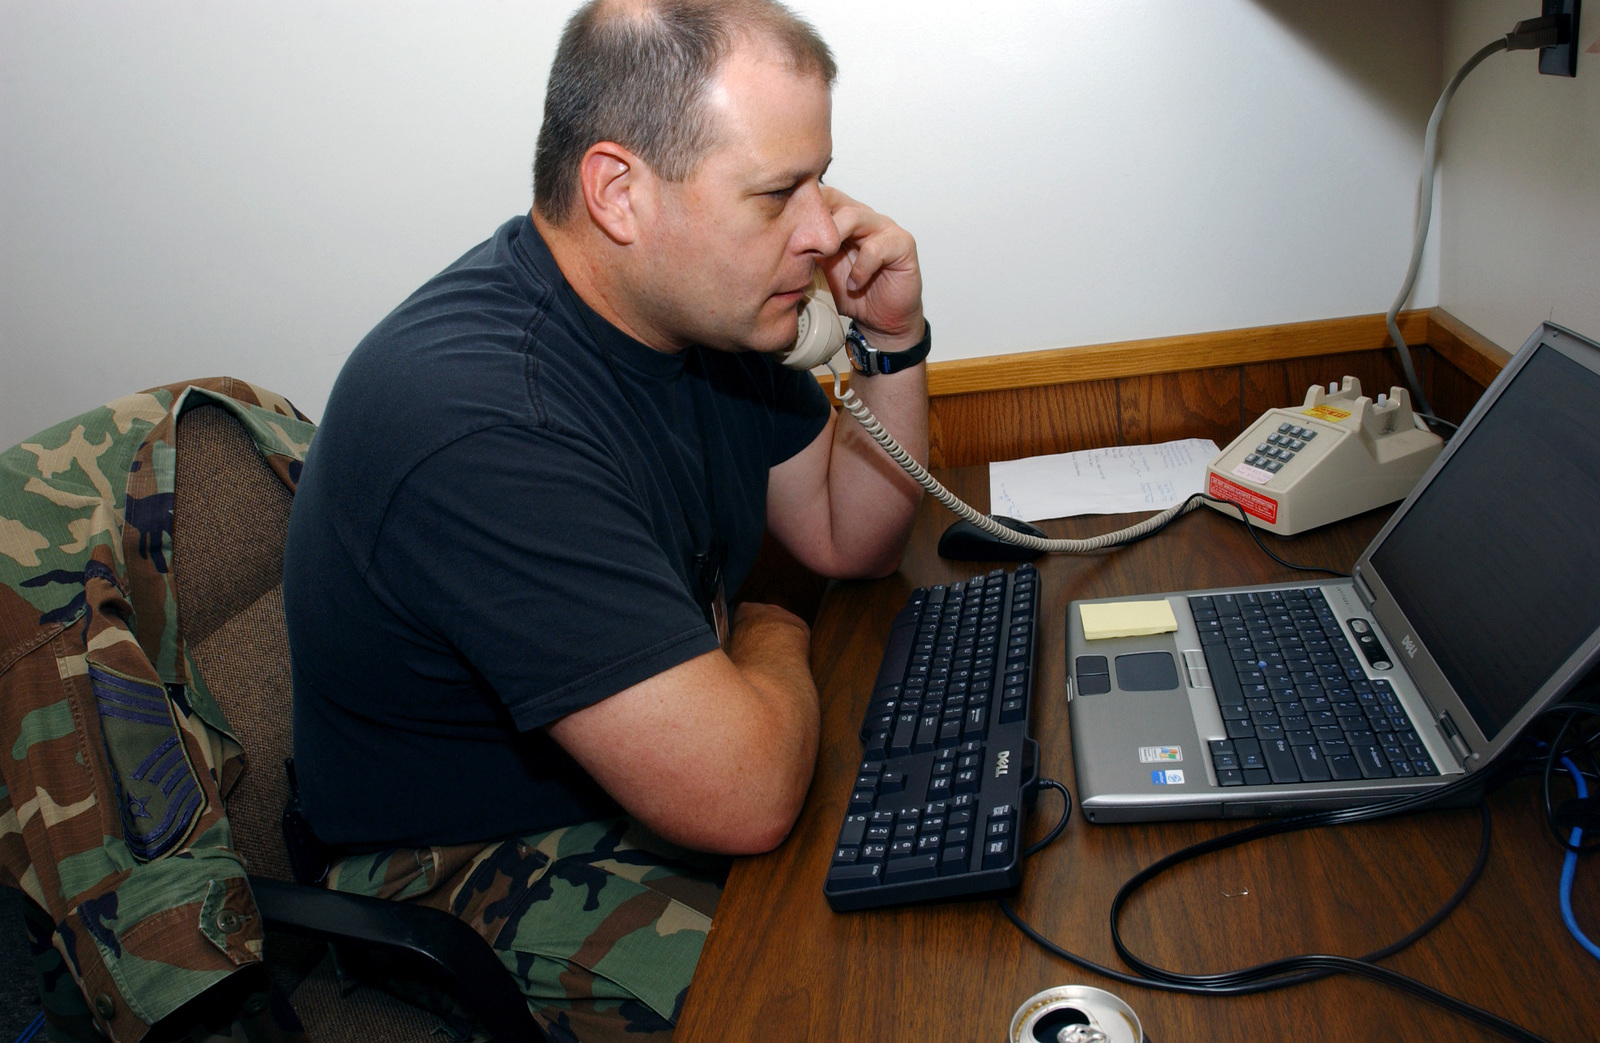 North Carolina Air National Guard (NCANG) CHIEF MASTER Sergeant (CMSGT) Richie Stiller, CHIEF, 145th Communications Flight (CF), 145th Airlift Wing (AW), Charlotte, North Carolina (NC), relays information back home by phone while participating in Patriot Exercise 2005. This annual war-fighting capabilities exercise is the largest held in the United States and involves US Air Force (USAF) and US Army (USA) Active, Reserve, and Guard units, as well as Canadian, United Kingdom, and Dutch military units